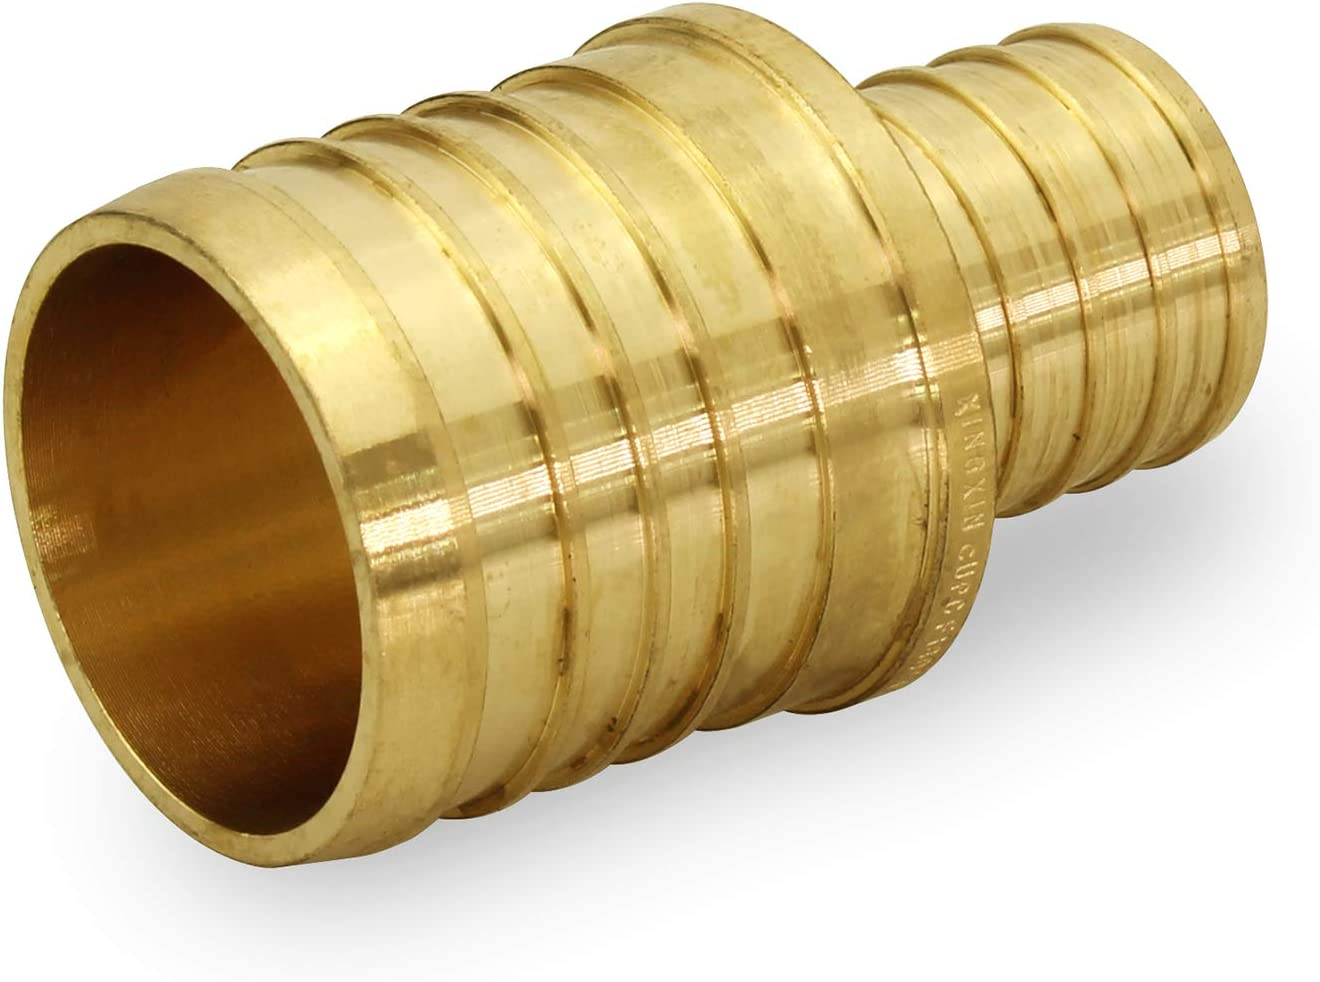 Barb Connection Durability Easy to Install Compatible with PEX Pipe Everflow EPRC3412-NL 3//4 Inch X 1//2 Inch Lead Free Brass Straight Coupling with Pex Ends Low-Cost plumbing Connection System